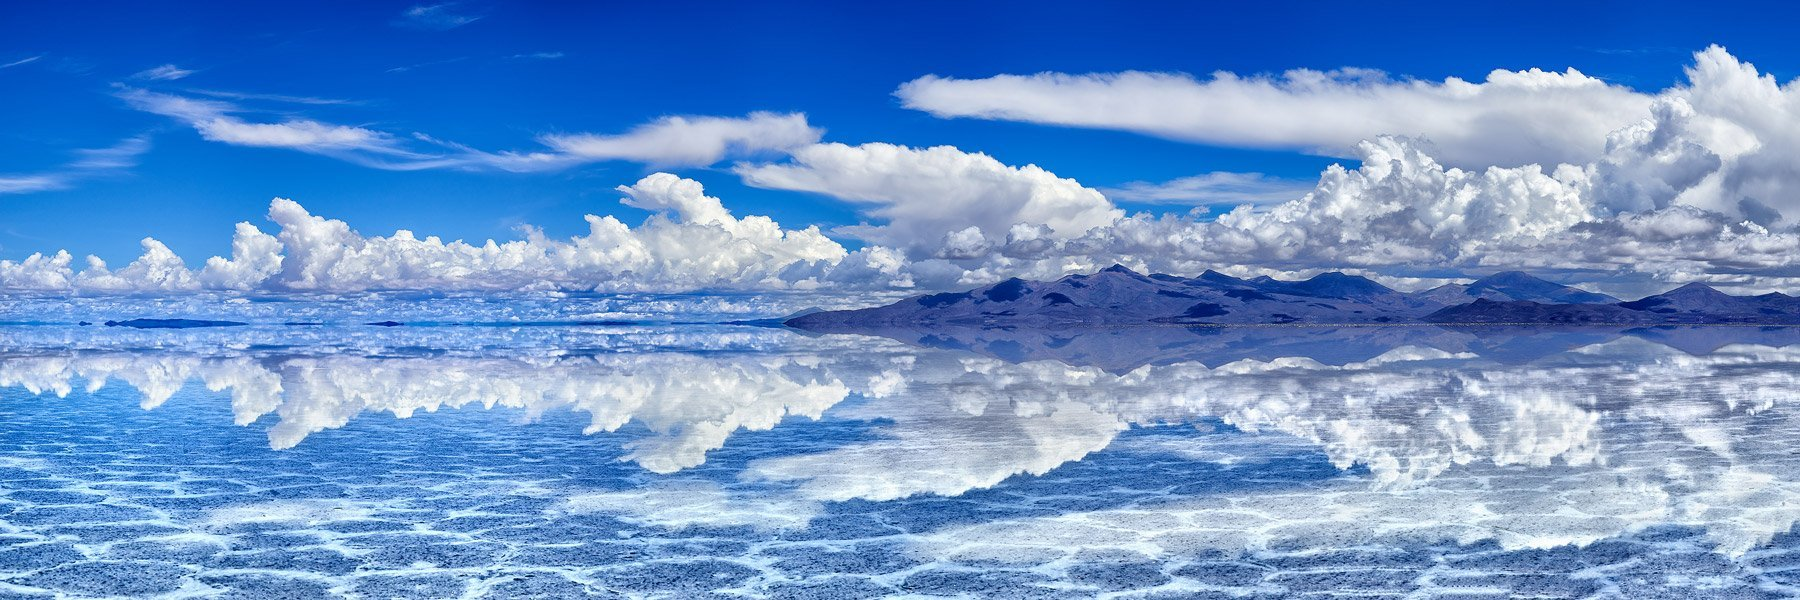 Fluffy white clouds perfectly reflected in Salar de Uyuni salt lake, Bolivia.